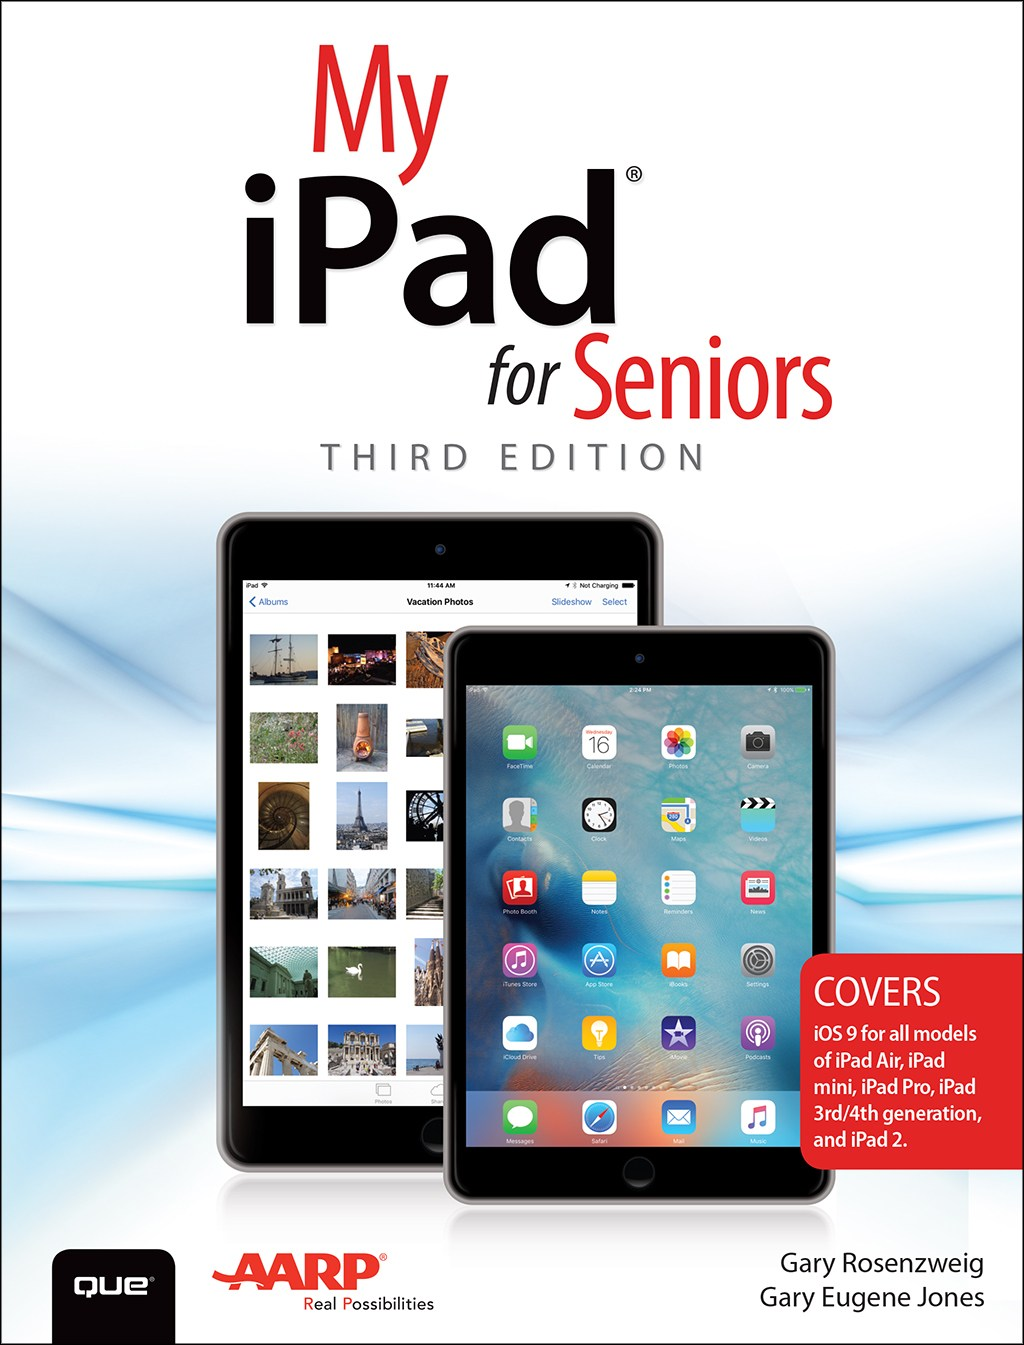 My iPad for Seniors (Covers iOS 9 for iPad Pro, all models of iPad Air and iPad mini, iPad 3rd/4th generation, and iPad 2), 3rd Edition